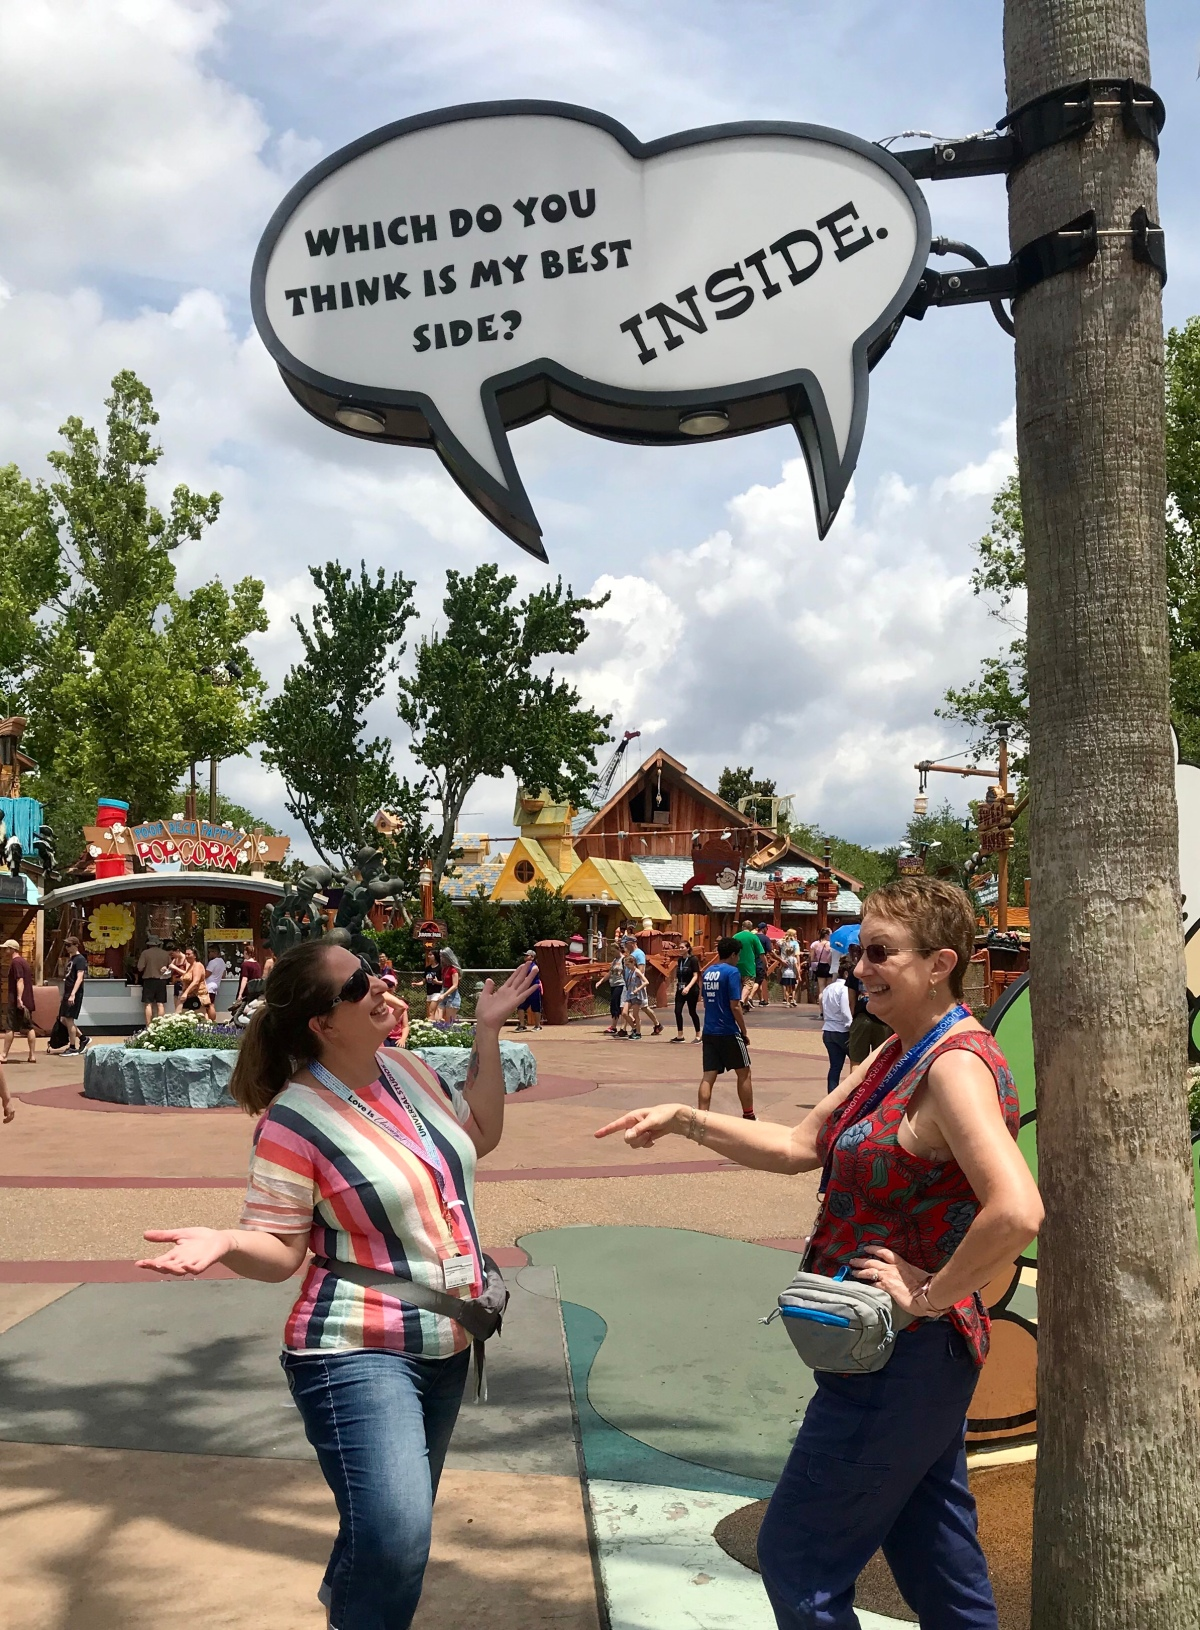 Photos from Girls' Day at UniversalStudios